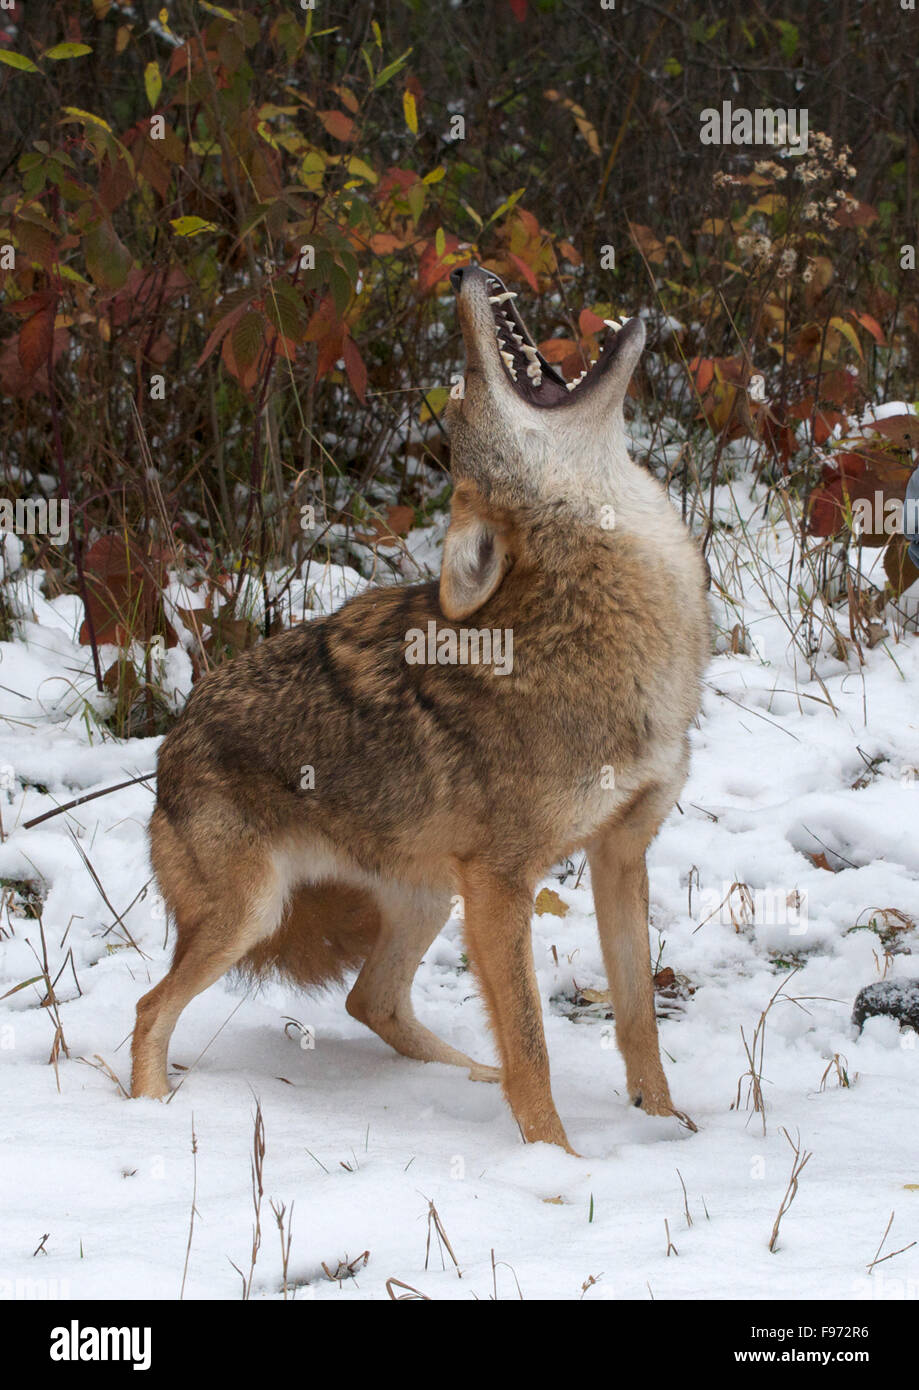 Coyote (Canis latrans), howling, Superior National Forest, MN, USA - Stock Image